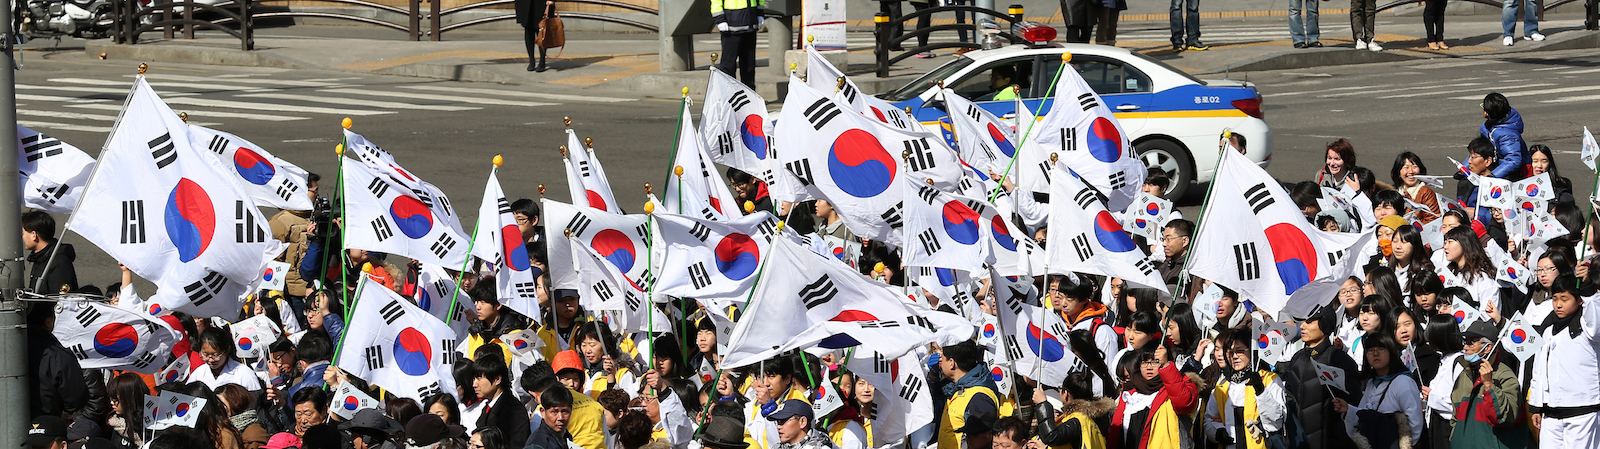 A celebration of the March First Movement in Seoul (Photo: Republic of Korea/ Flickr)